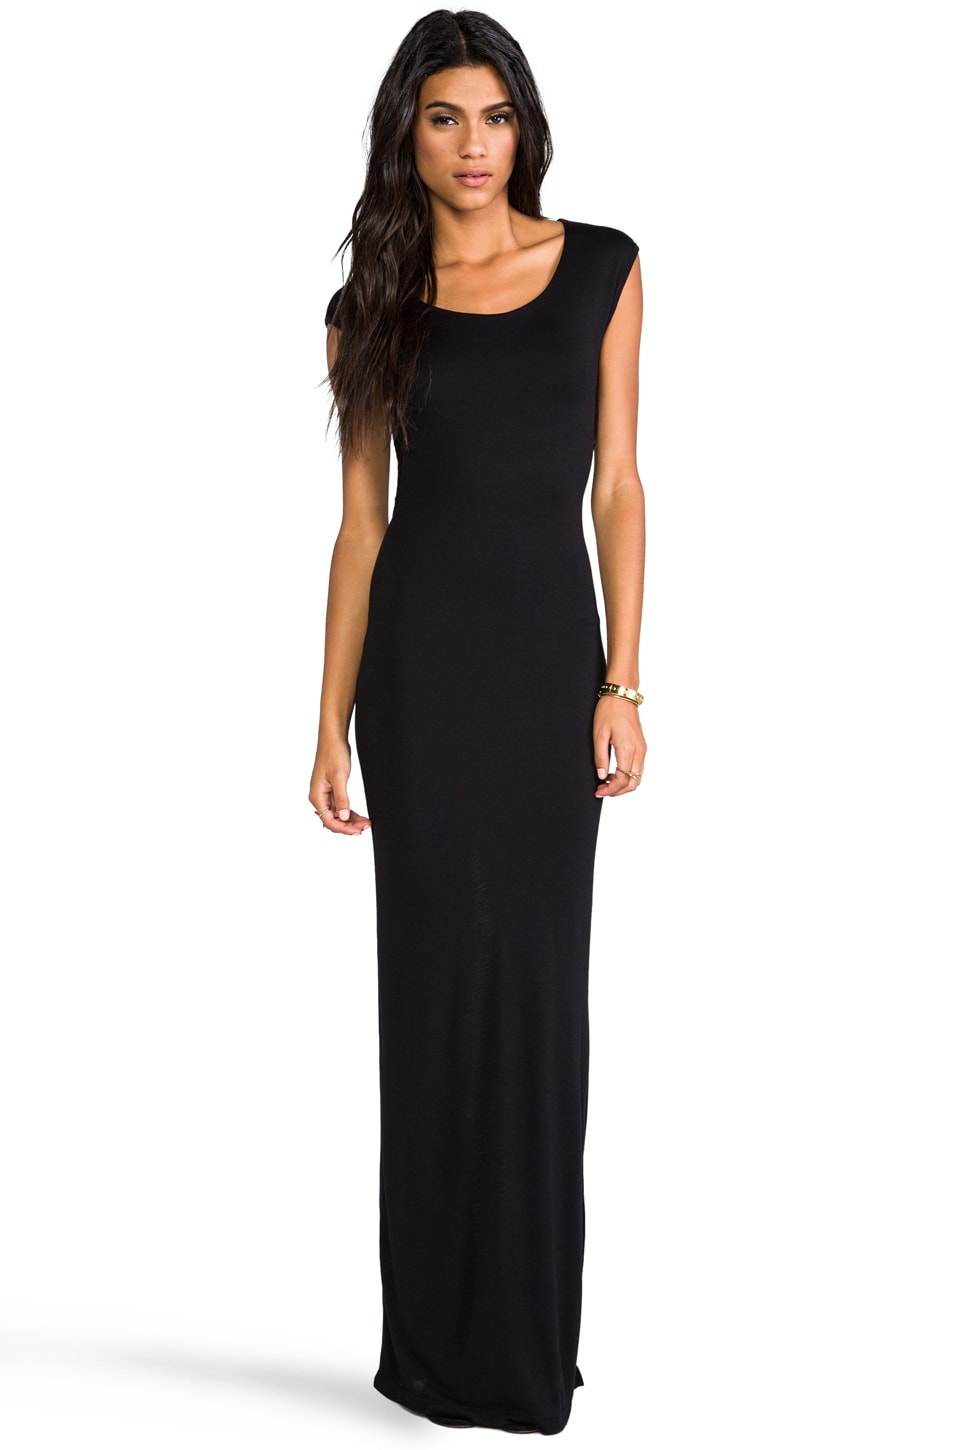 WOODLEIGH Annabelle Maxi in Black